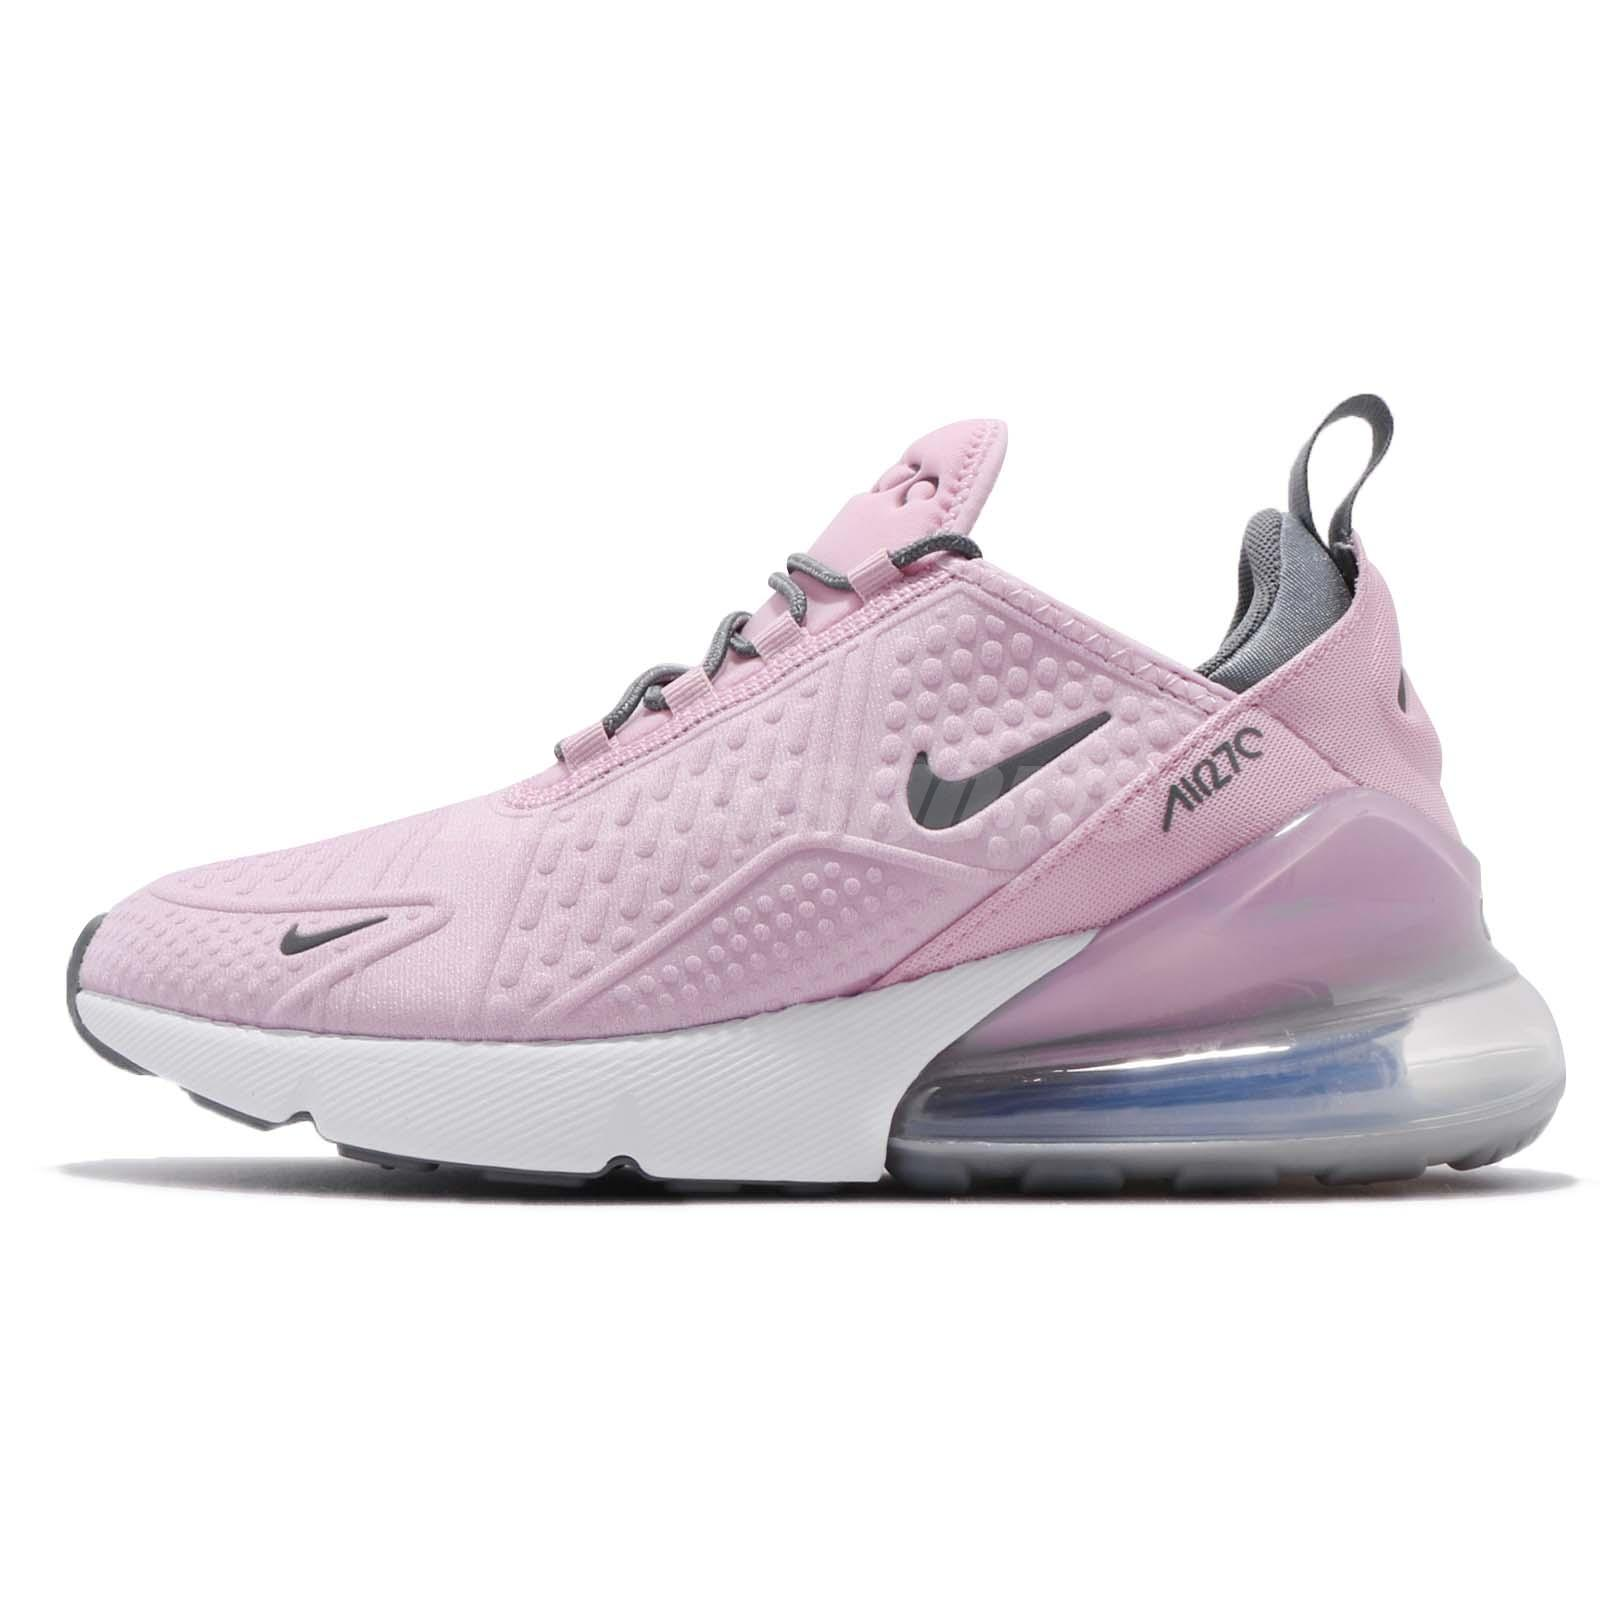 Pink Nike Running Shoes Shoes Collections